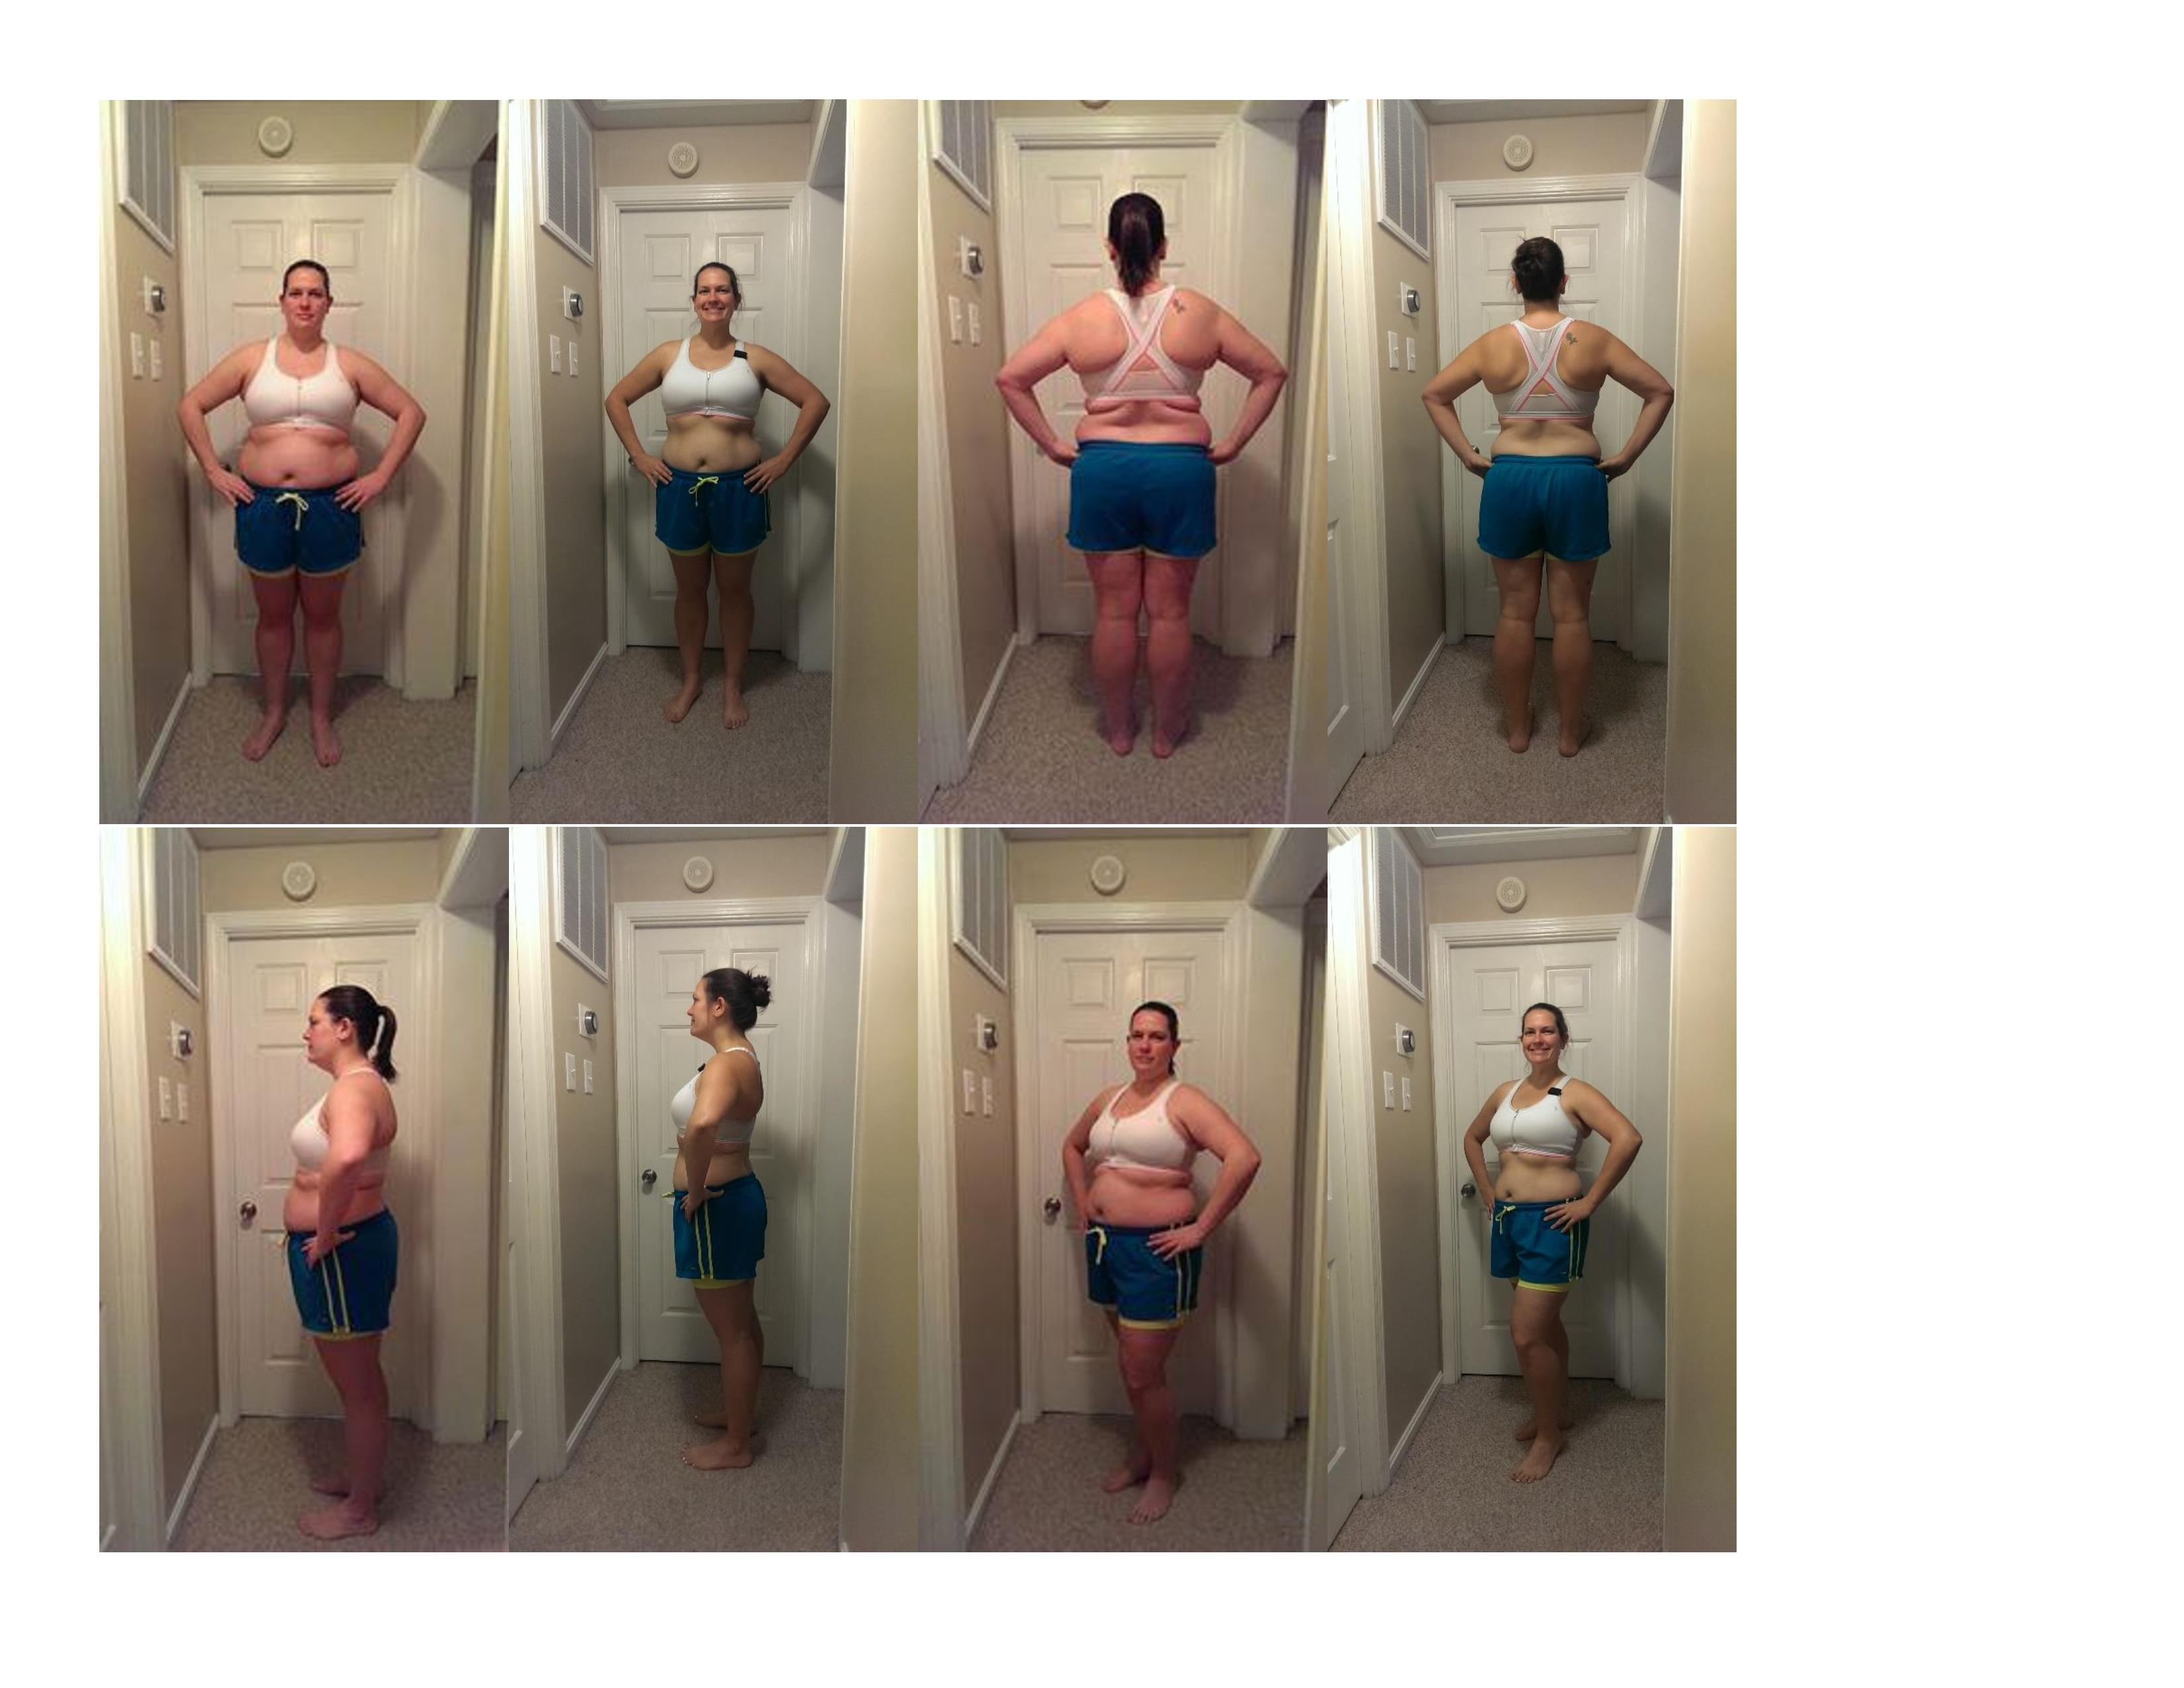 ... 24.5 inches and 29.7 pounds with 21 Day Fix and Focus T25 Beta/Alpha